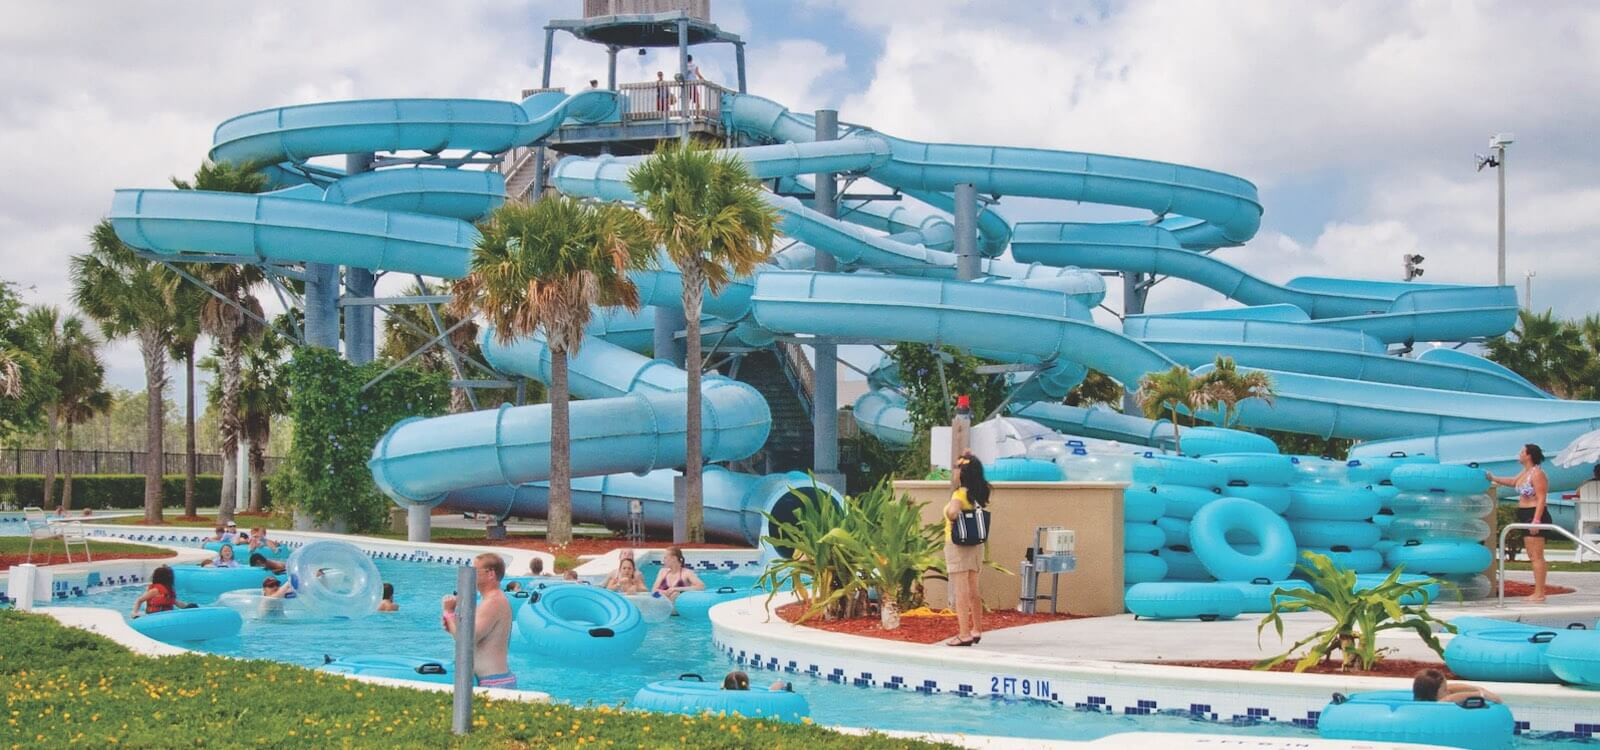 MustDo.com | Sun-N-Fun Lagoon family fun waterpark Naples, Florida, USA.